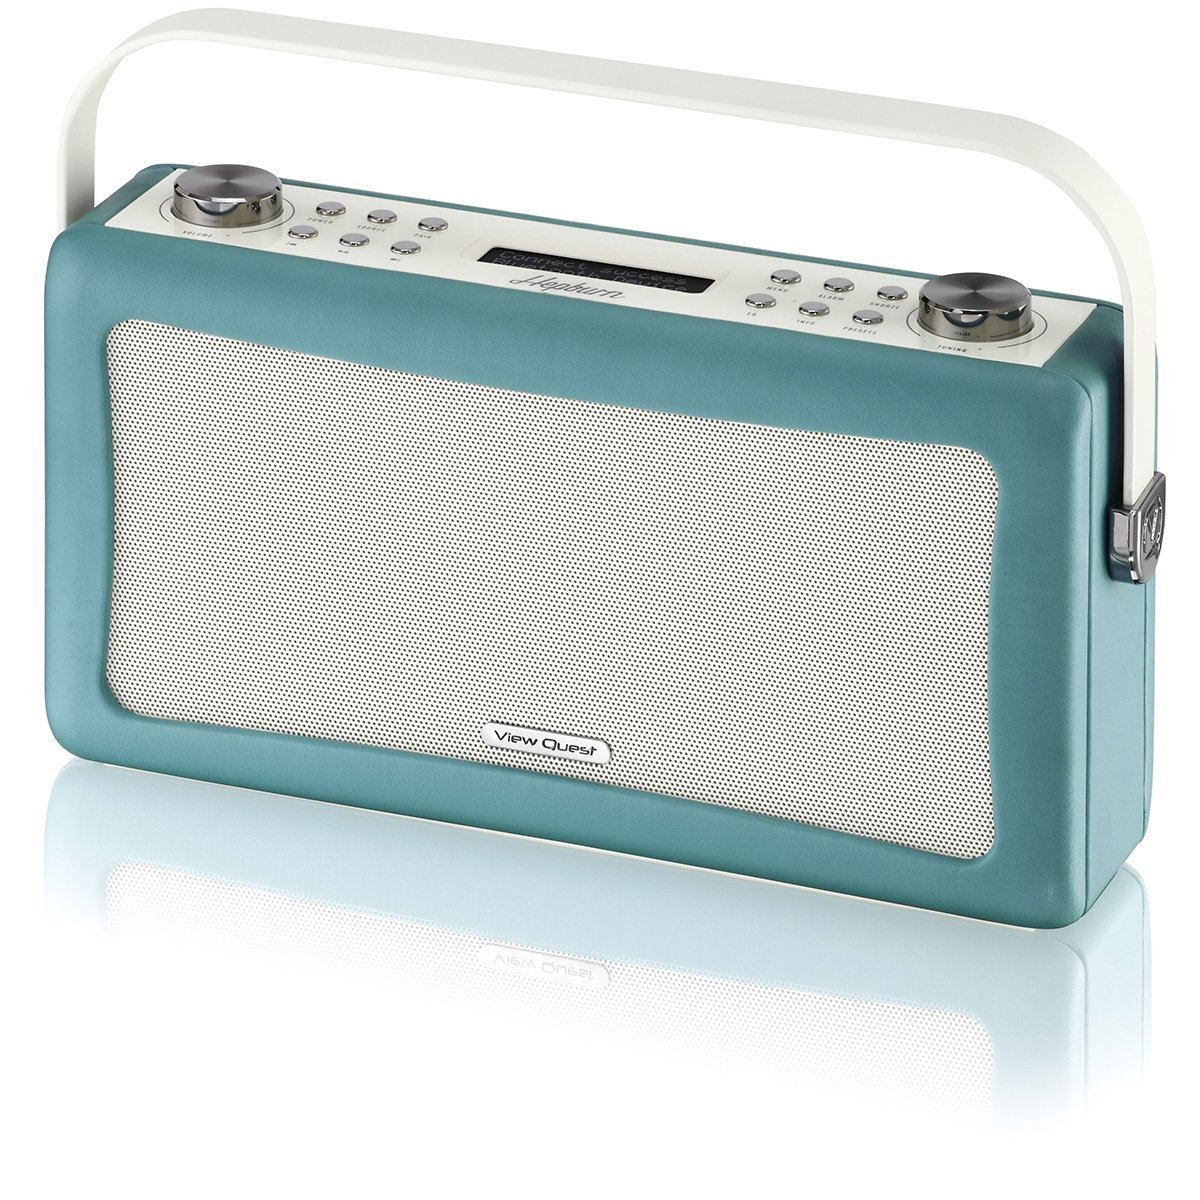 viewquest hepburn dab fm radio bluetooth lautsprecher system mit aux teal ebay. Black Bedroom Furniture Sets. Home Design Ideas